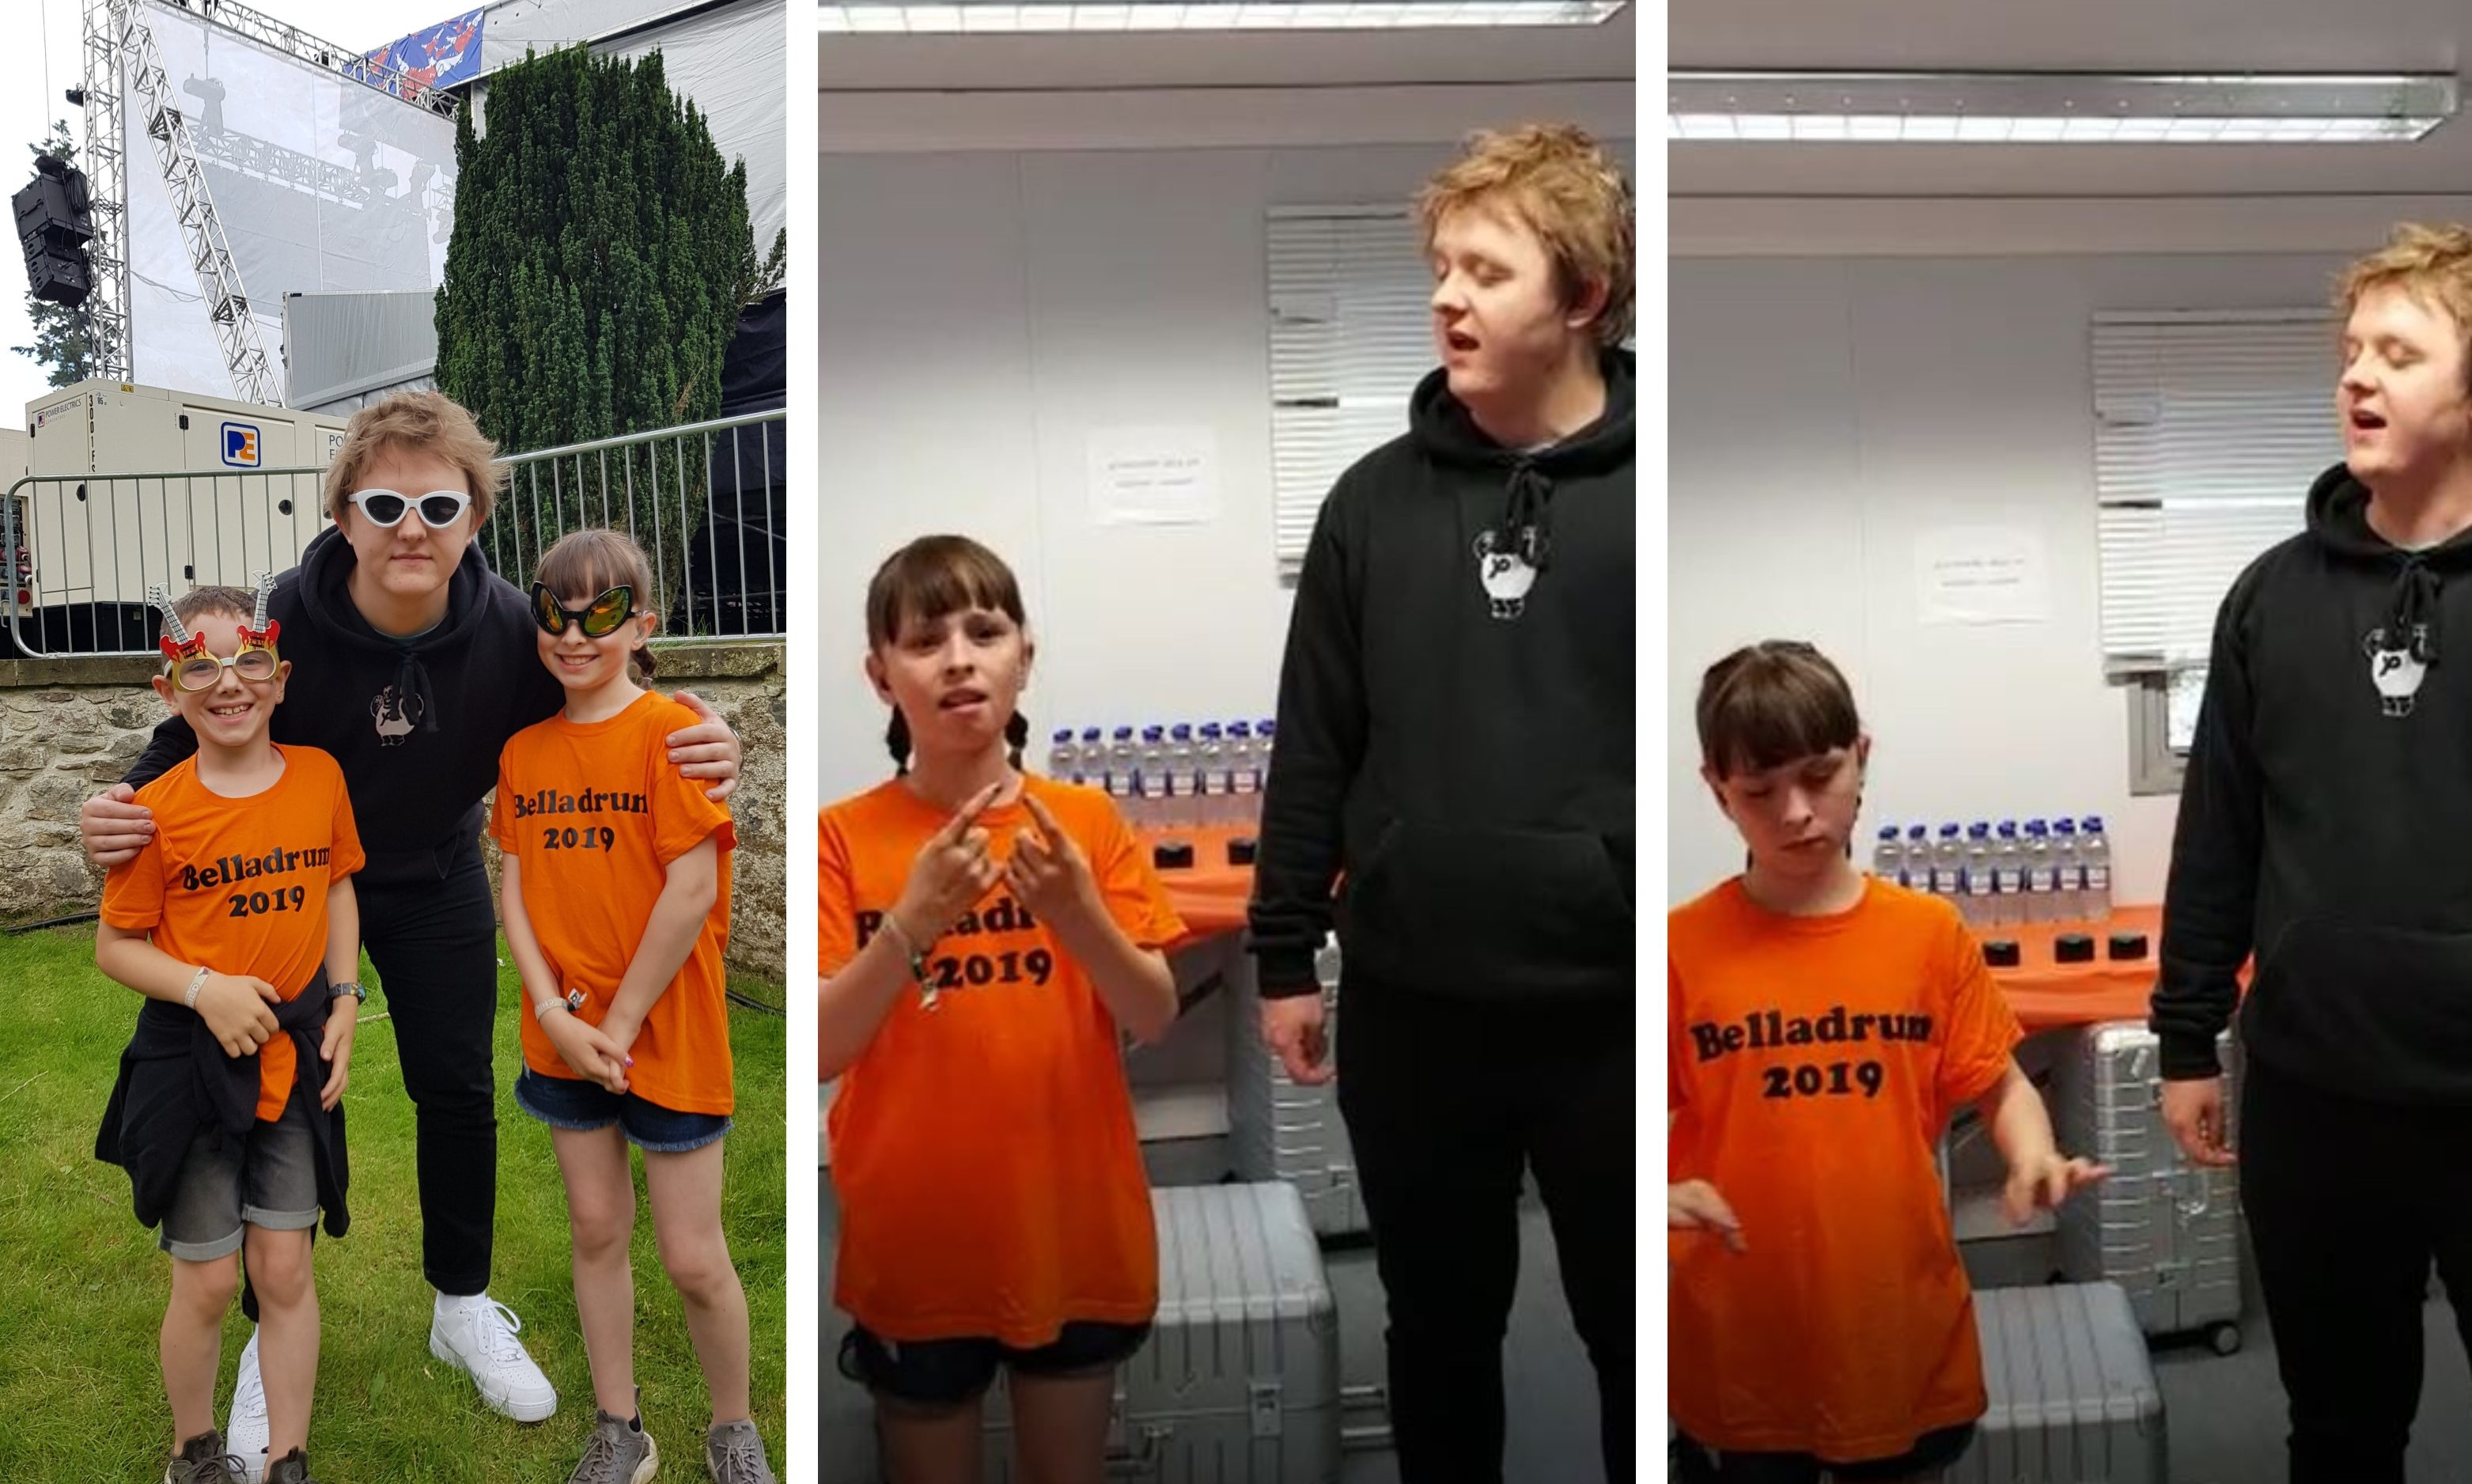 Lewis Capaldi joined  Niamdh Braid for the special version of his song.